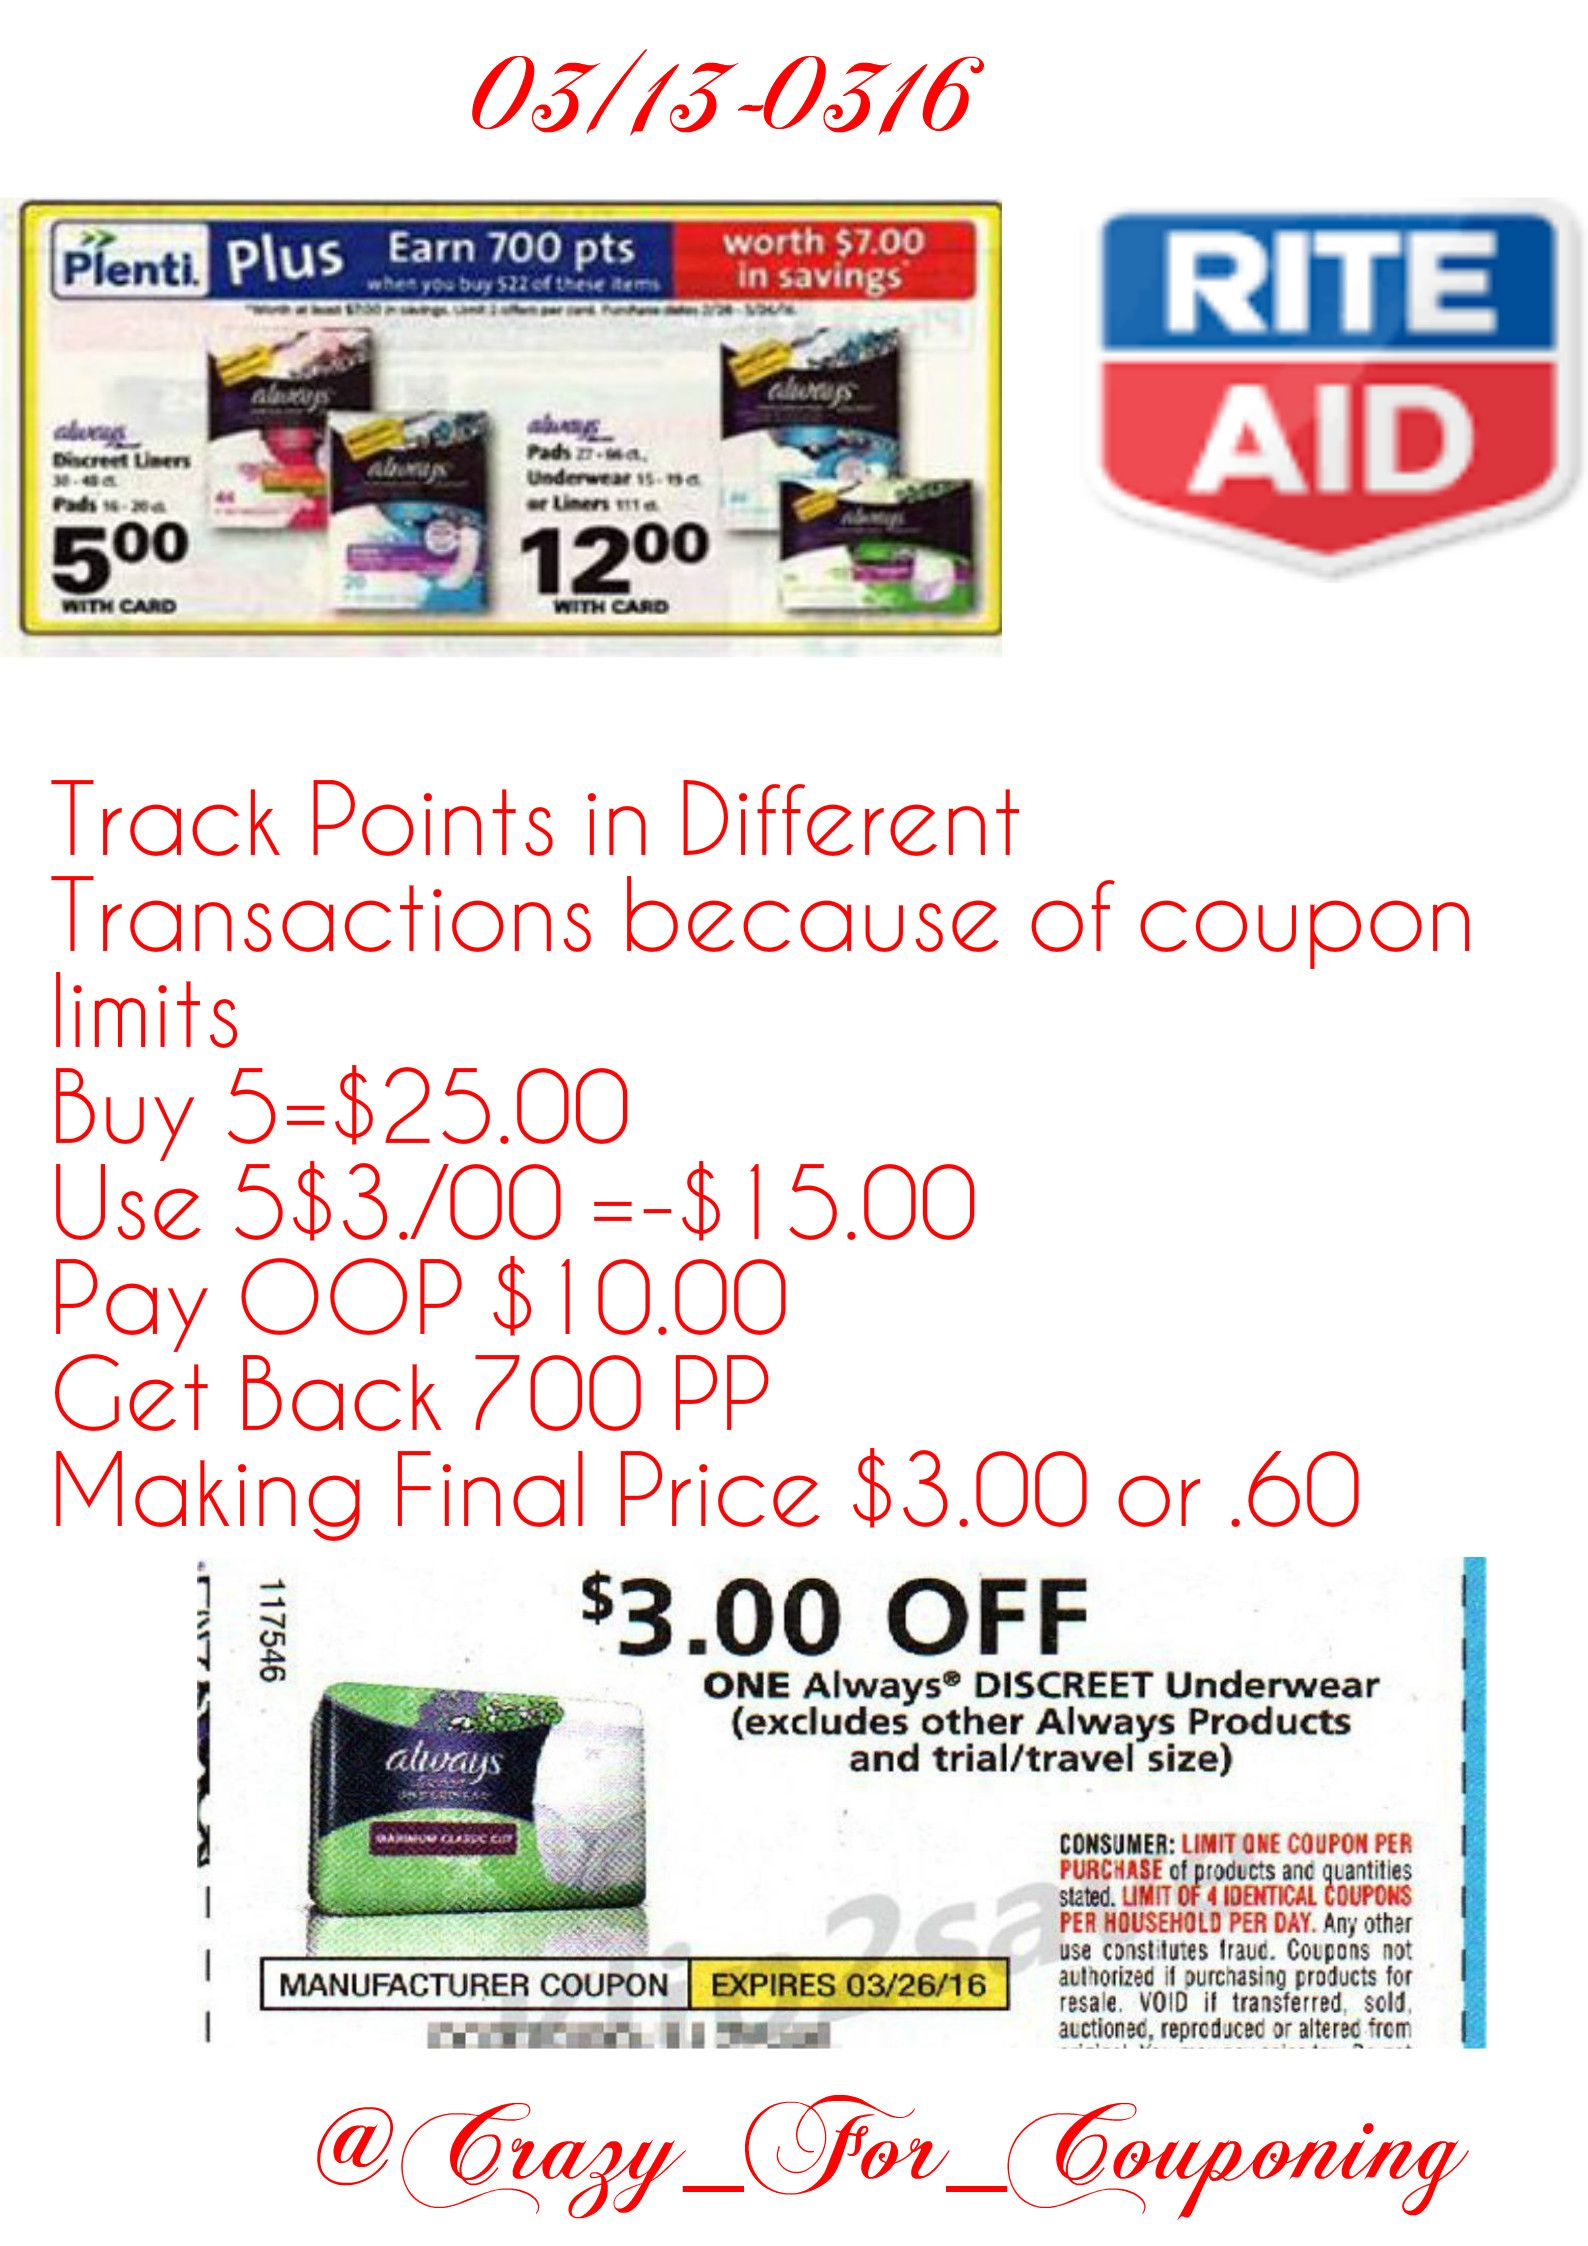 Pin by Crazy For on Rite Aid Coupon Match Ups | Pinterest | Rite aid